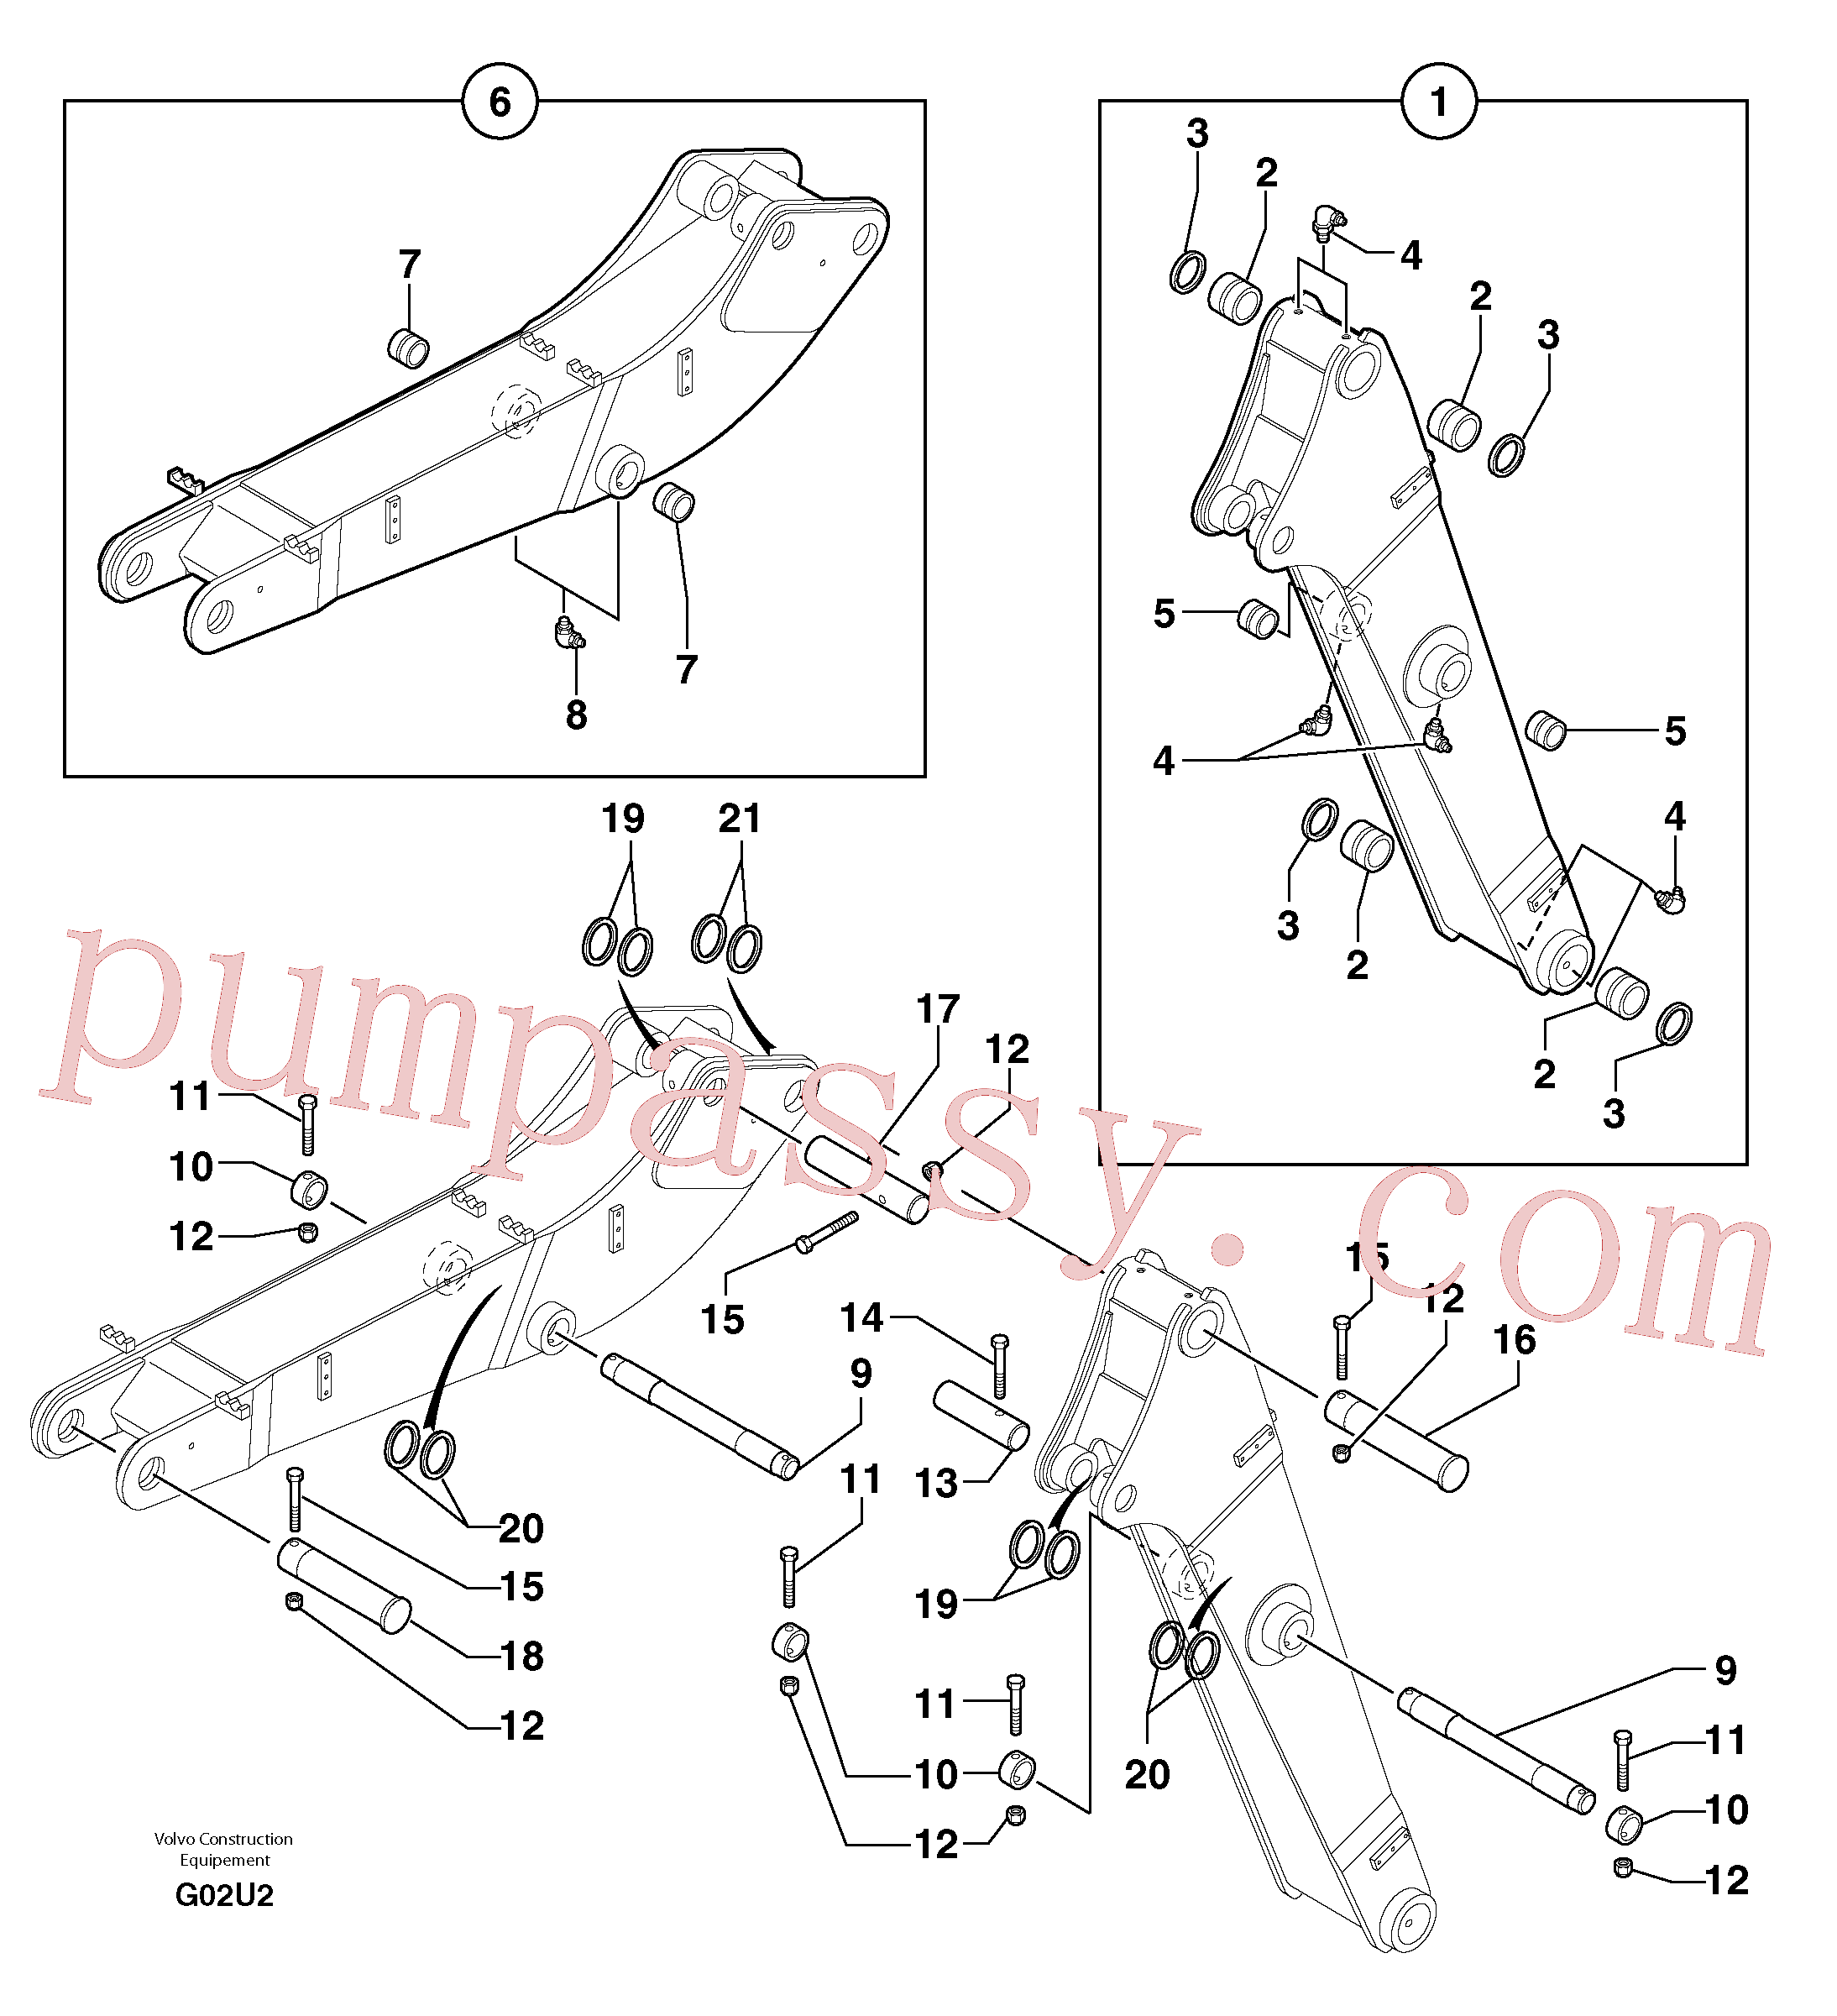 PJ3750052 Stub Axle for Volvo Excavator Parts